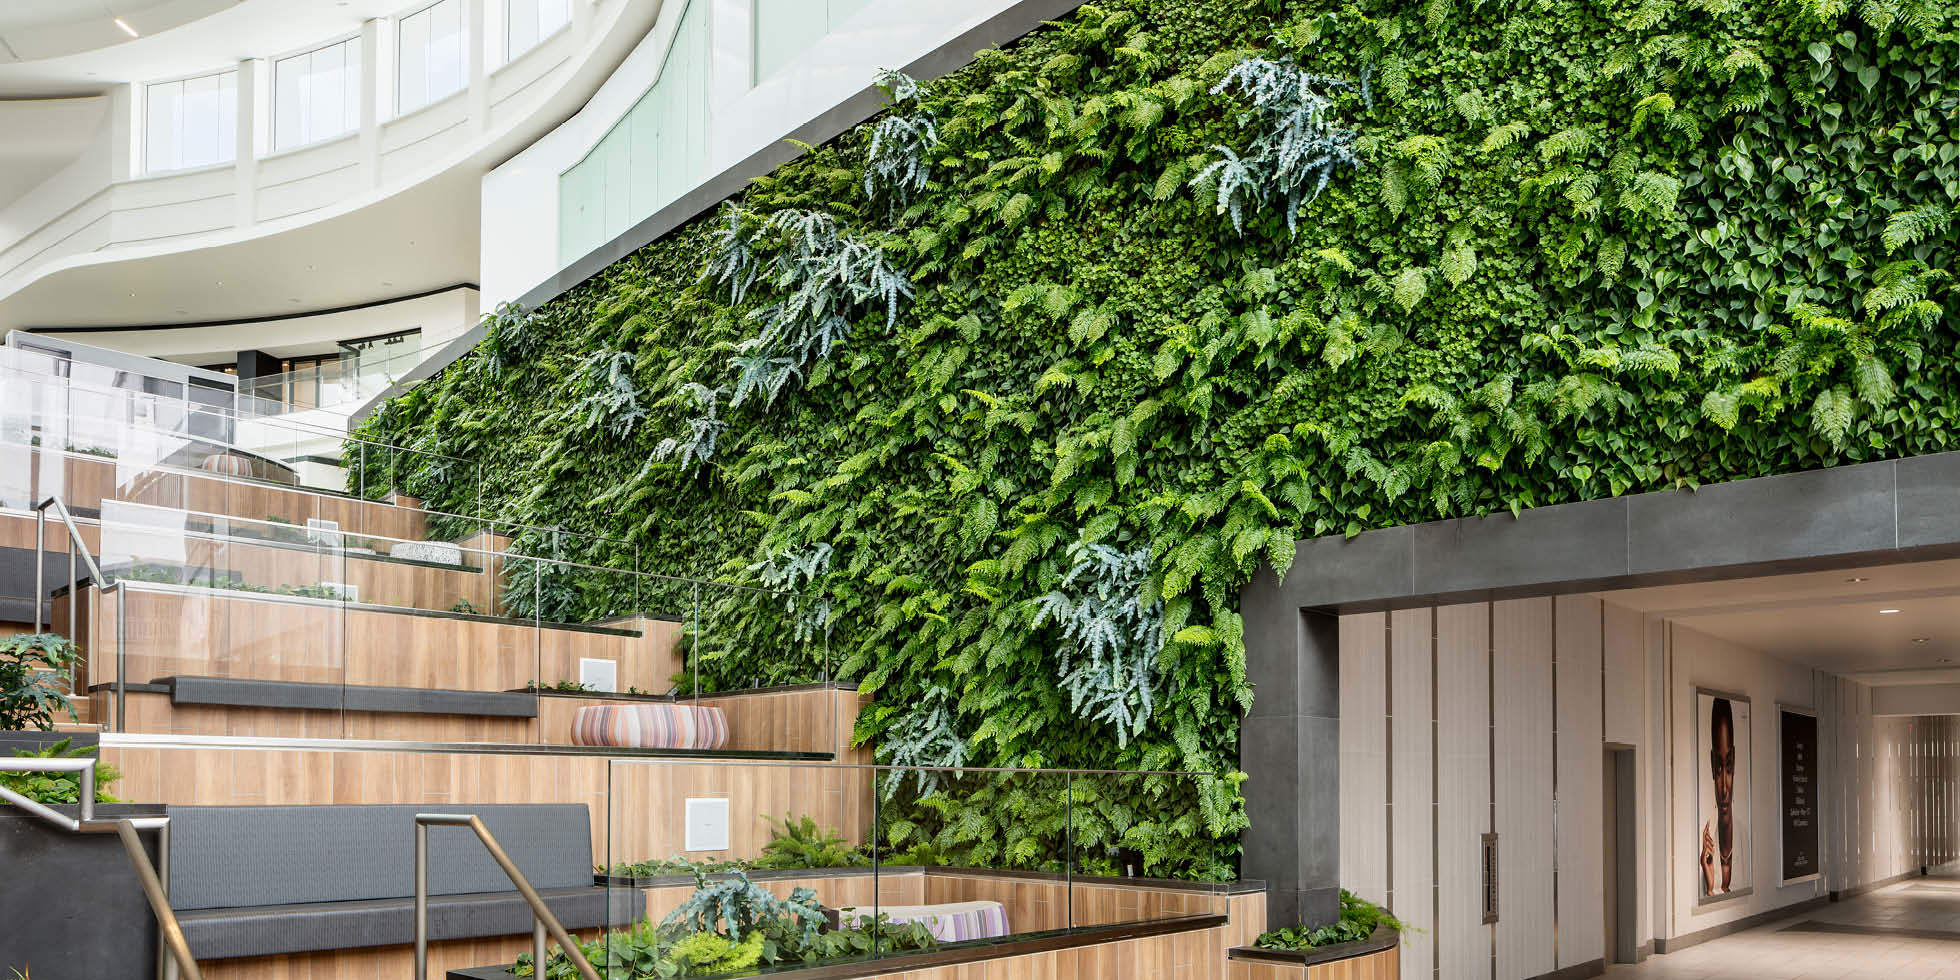 Del Amo Fashion Center Living Wall by Habitat Horticulture - View 1